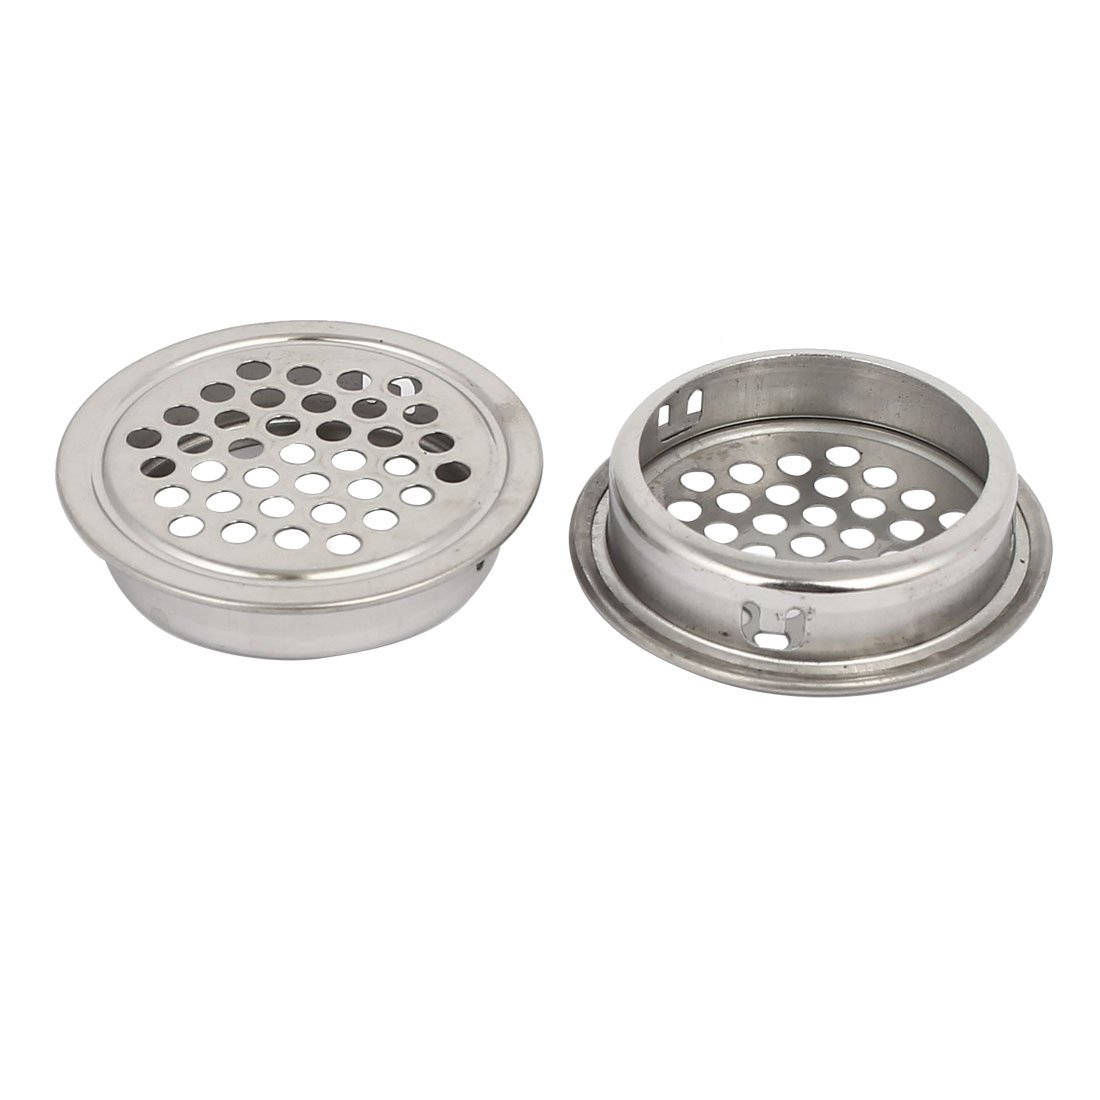 uxcell 35mm Bottom Dia Stainless Steel Round Shaped Mesh Hole Air Vent Louver 35pcs by uxcell (Image #2)